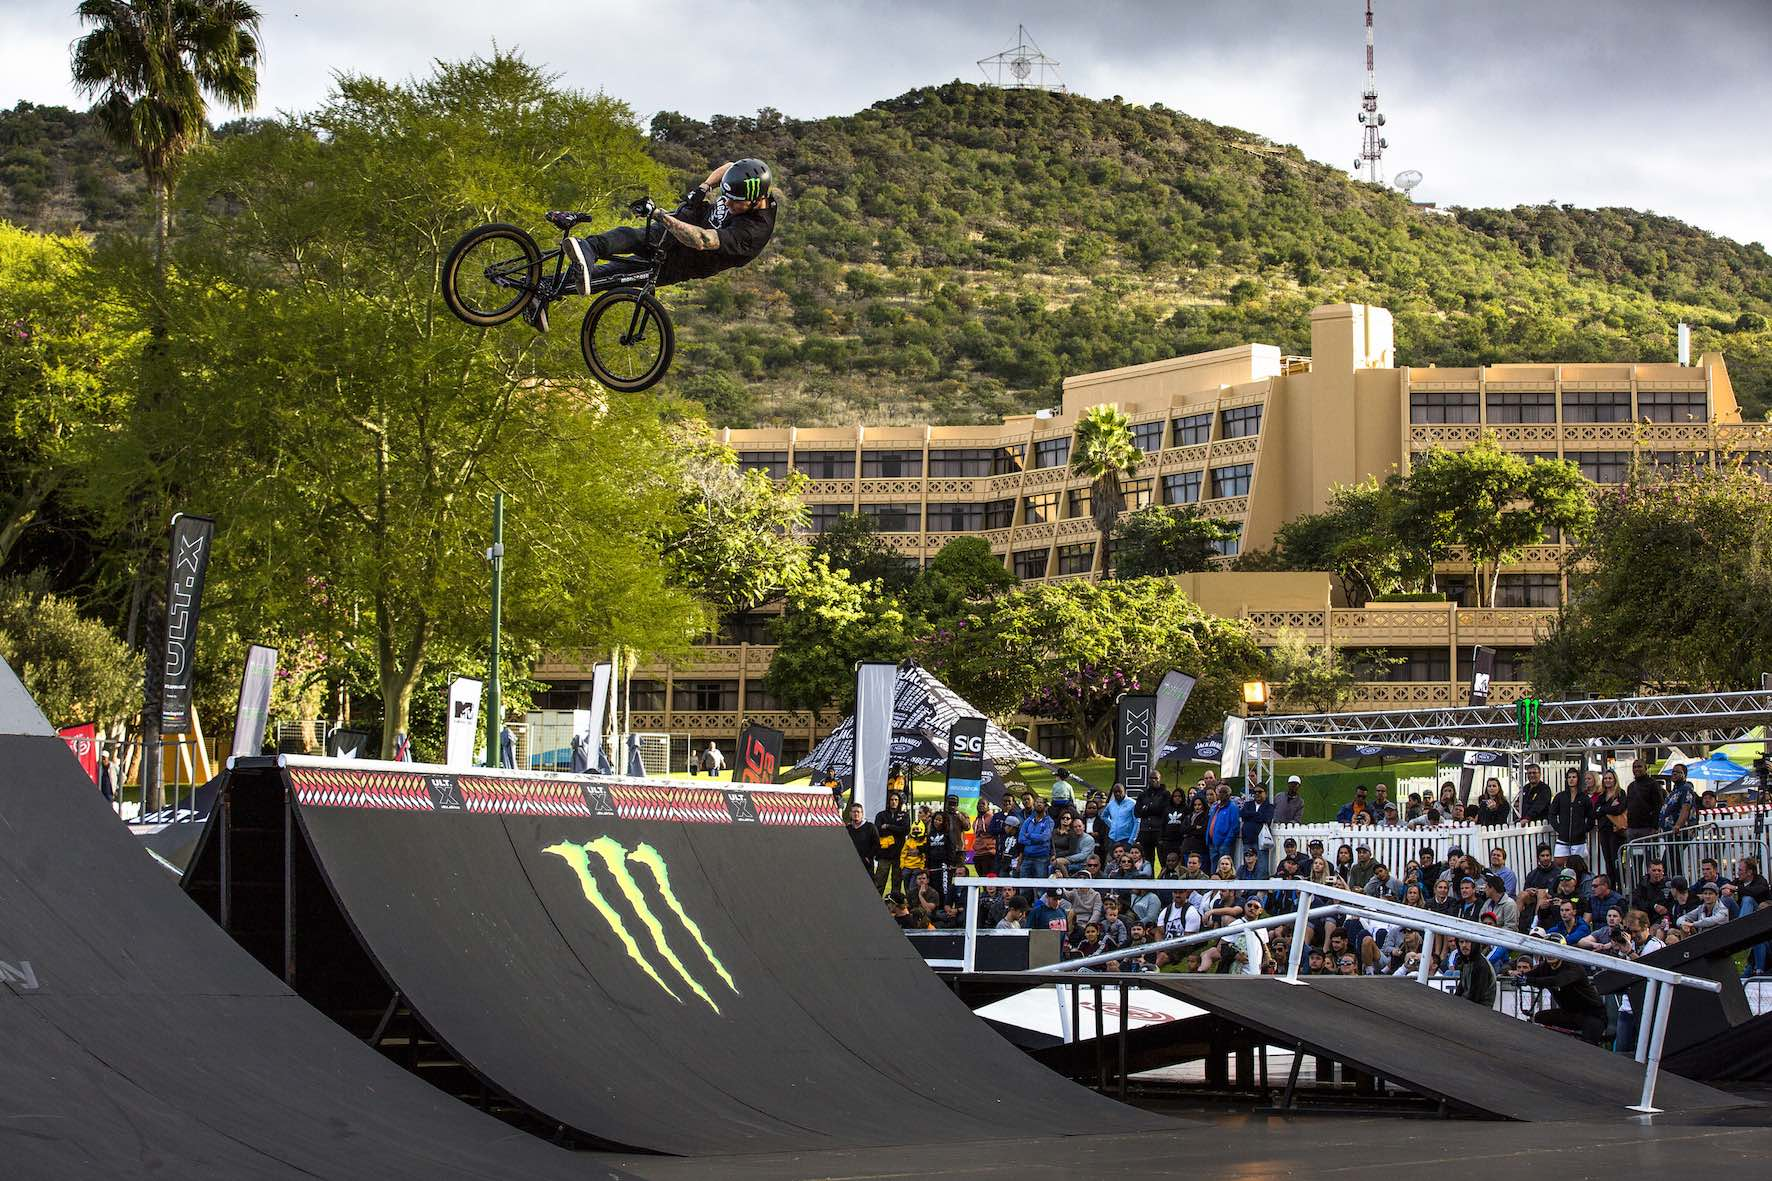 Action Sports at its best at Ultimate X 2018